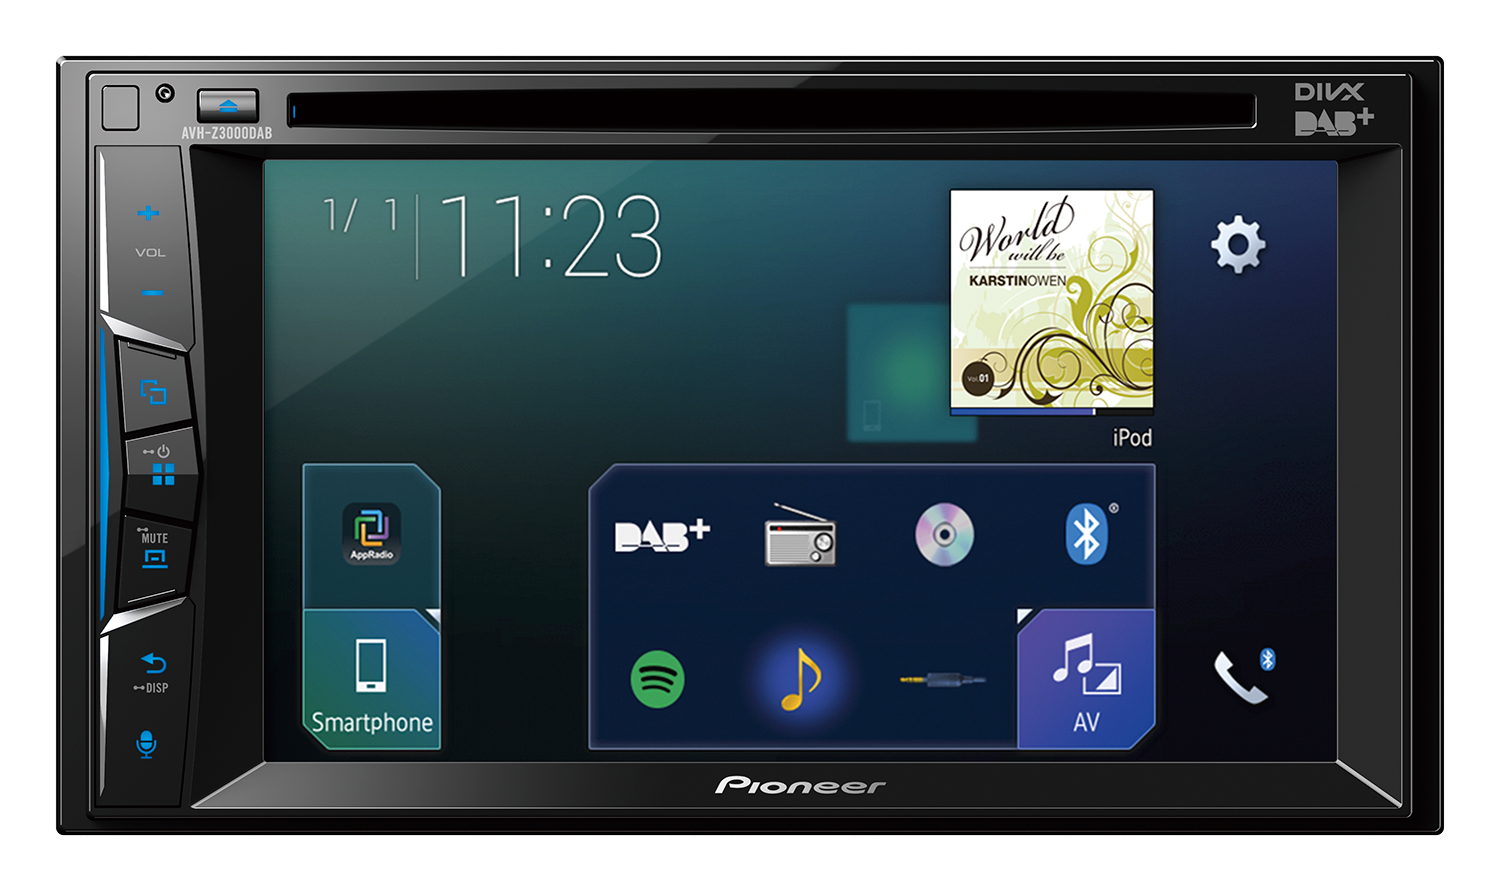 Avh Z3000dab Pioneer And Play Remote Start Installation For Nissan Infiniti Youtube Km703 Eu5 Blue Front Top